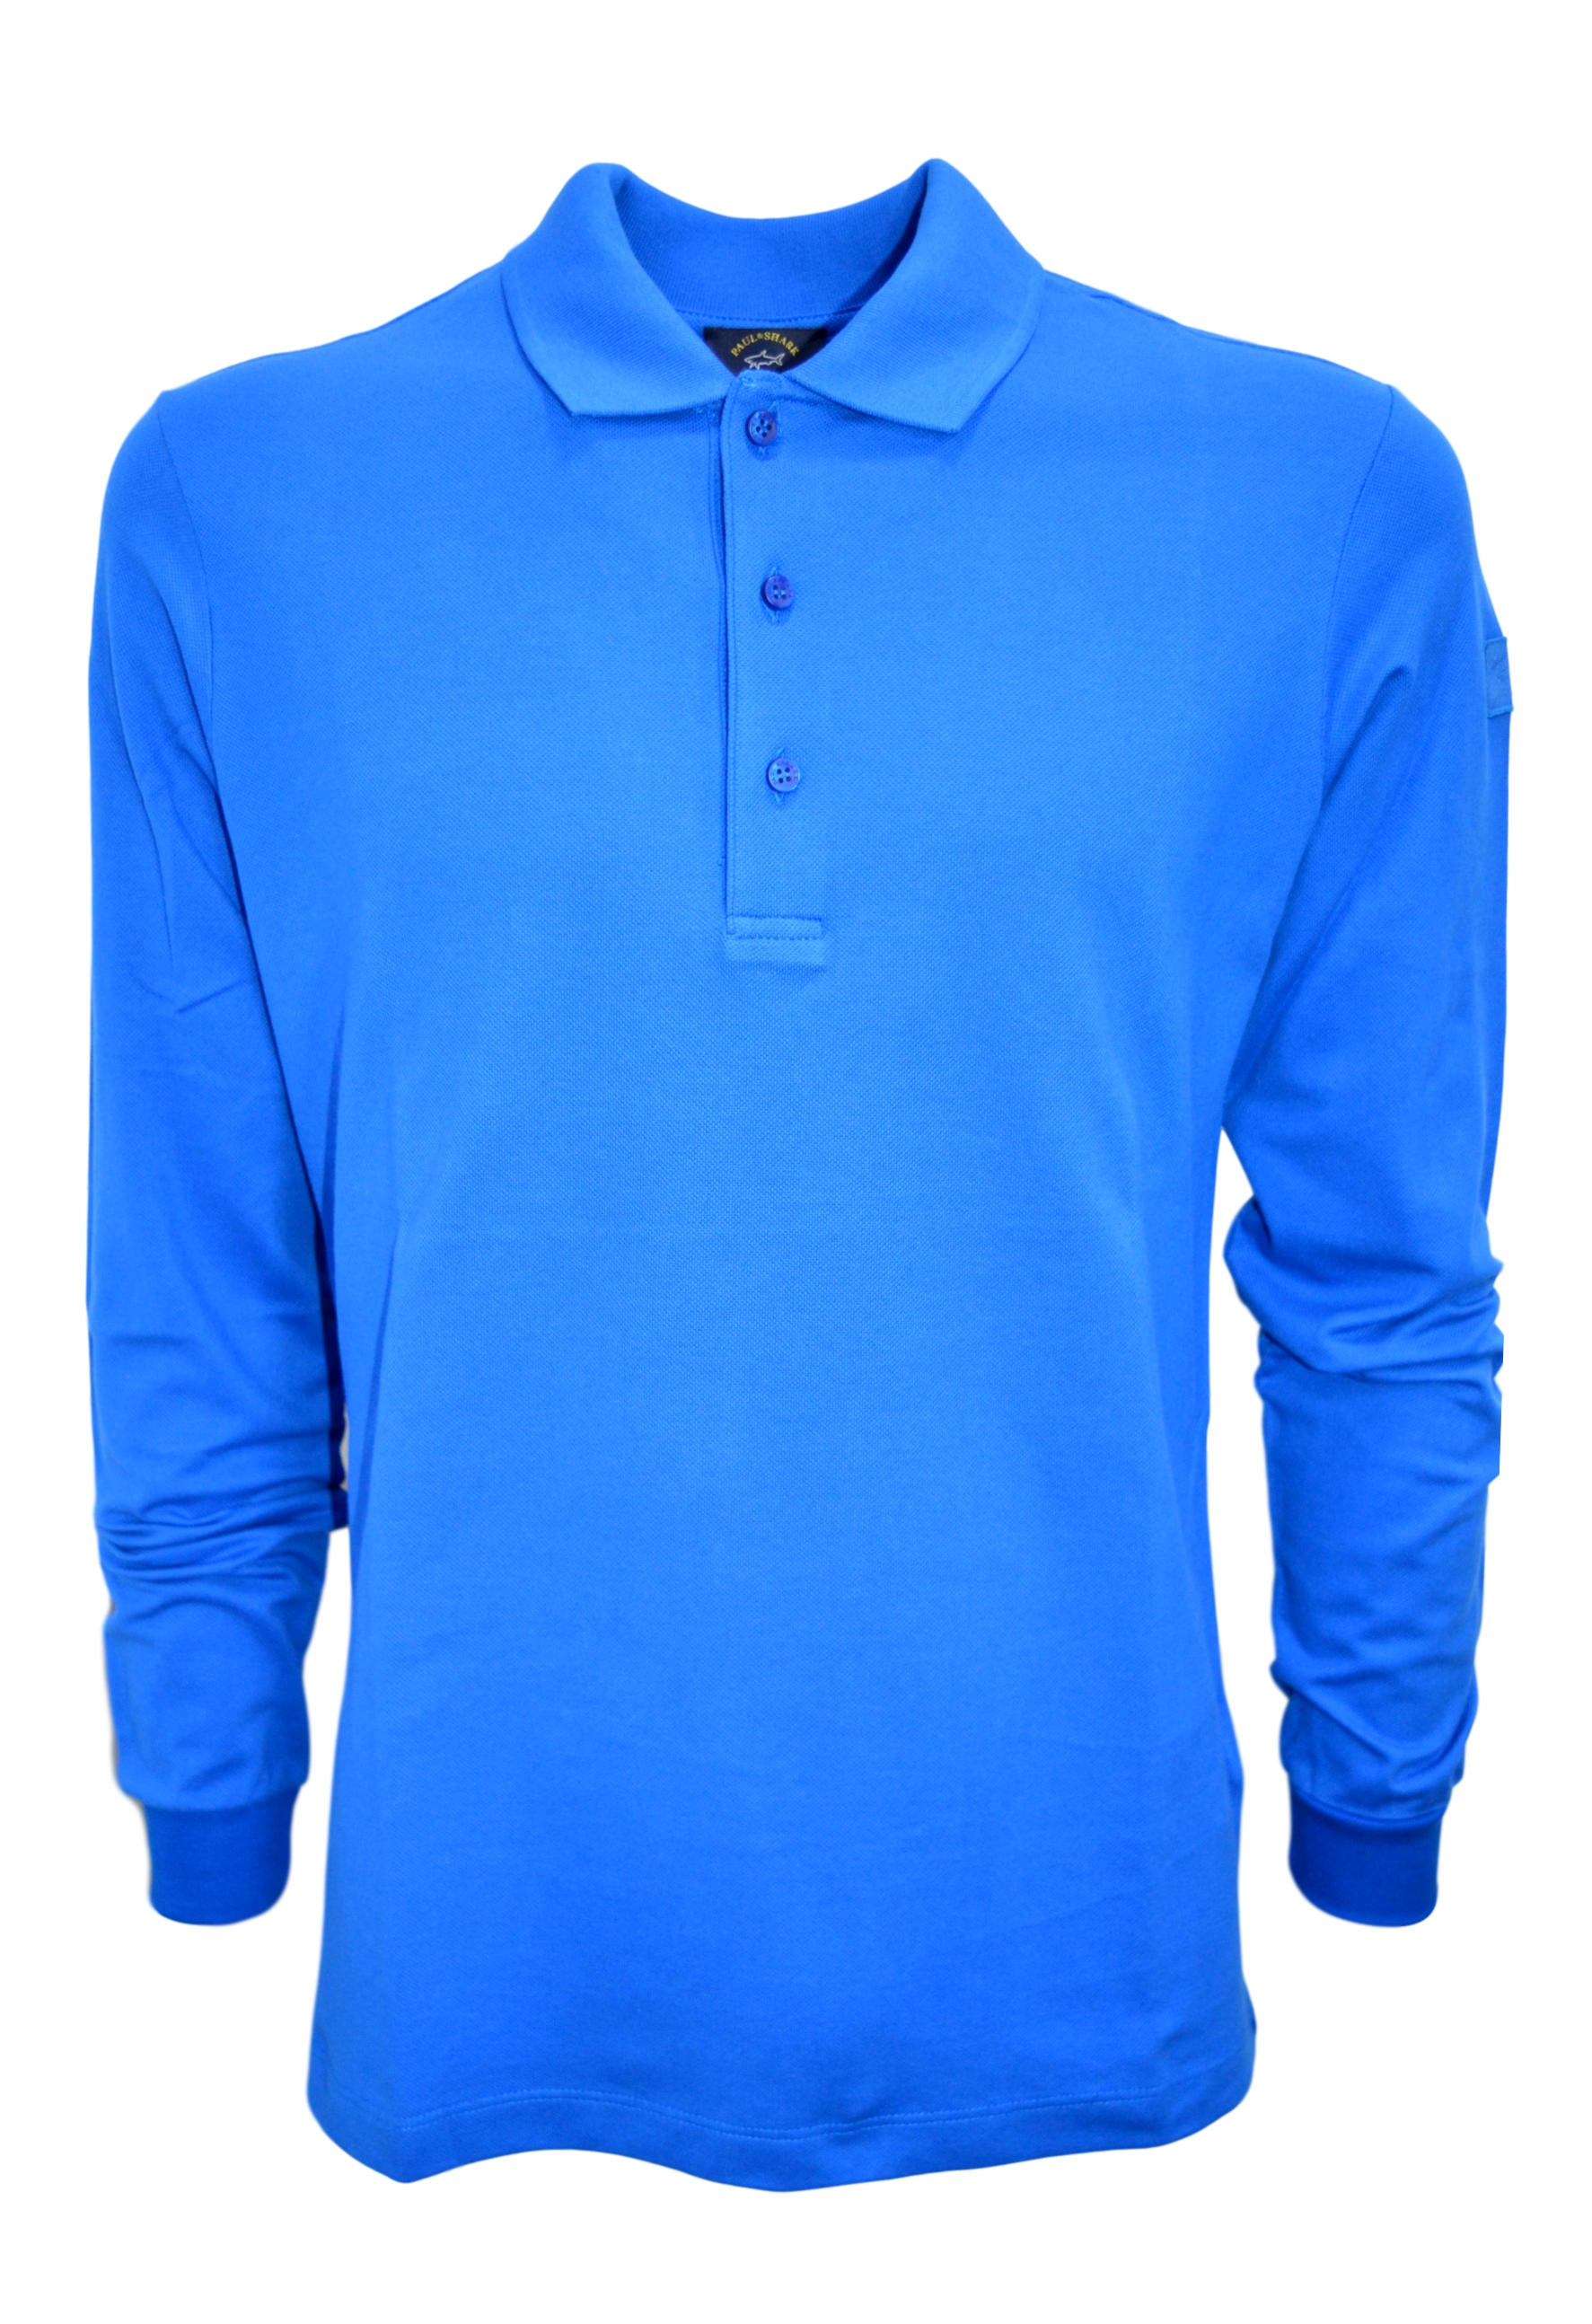 PAUL SHARK YACHTING POLO P19P1520 MANICA LUNGA COL. 049 AZZURRO